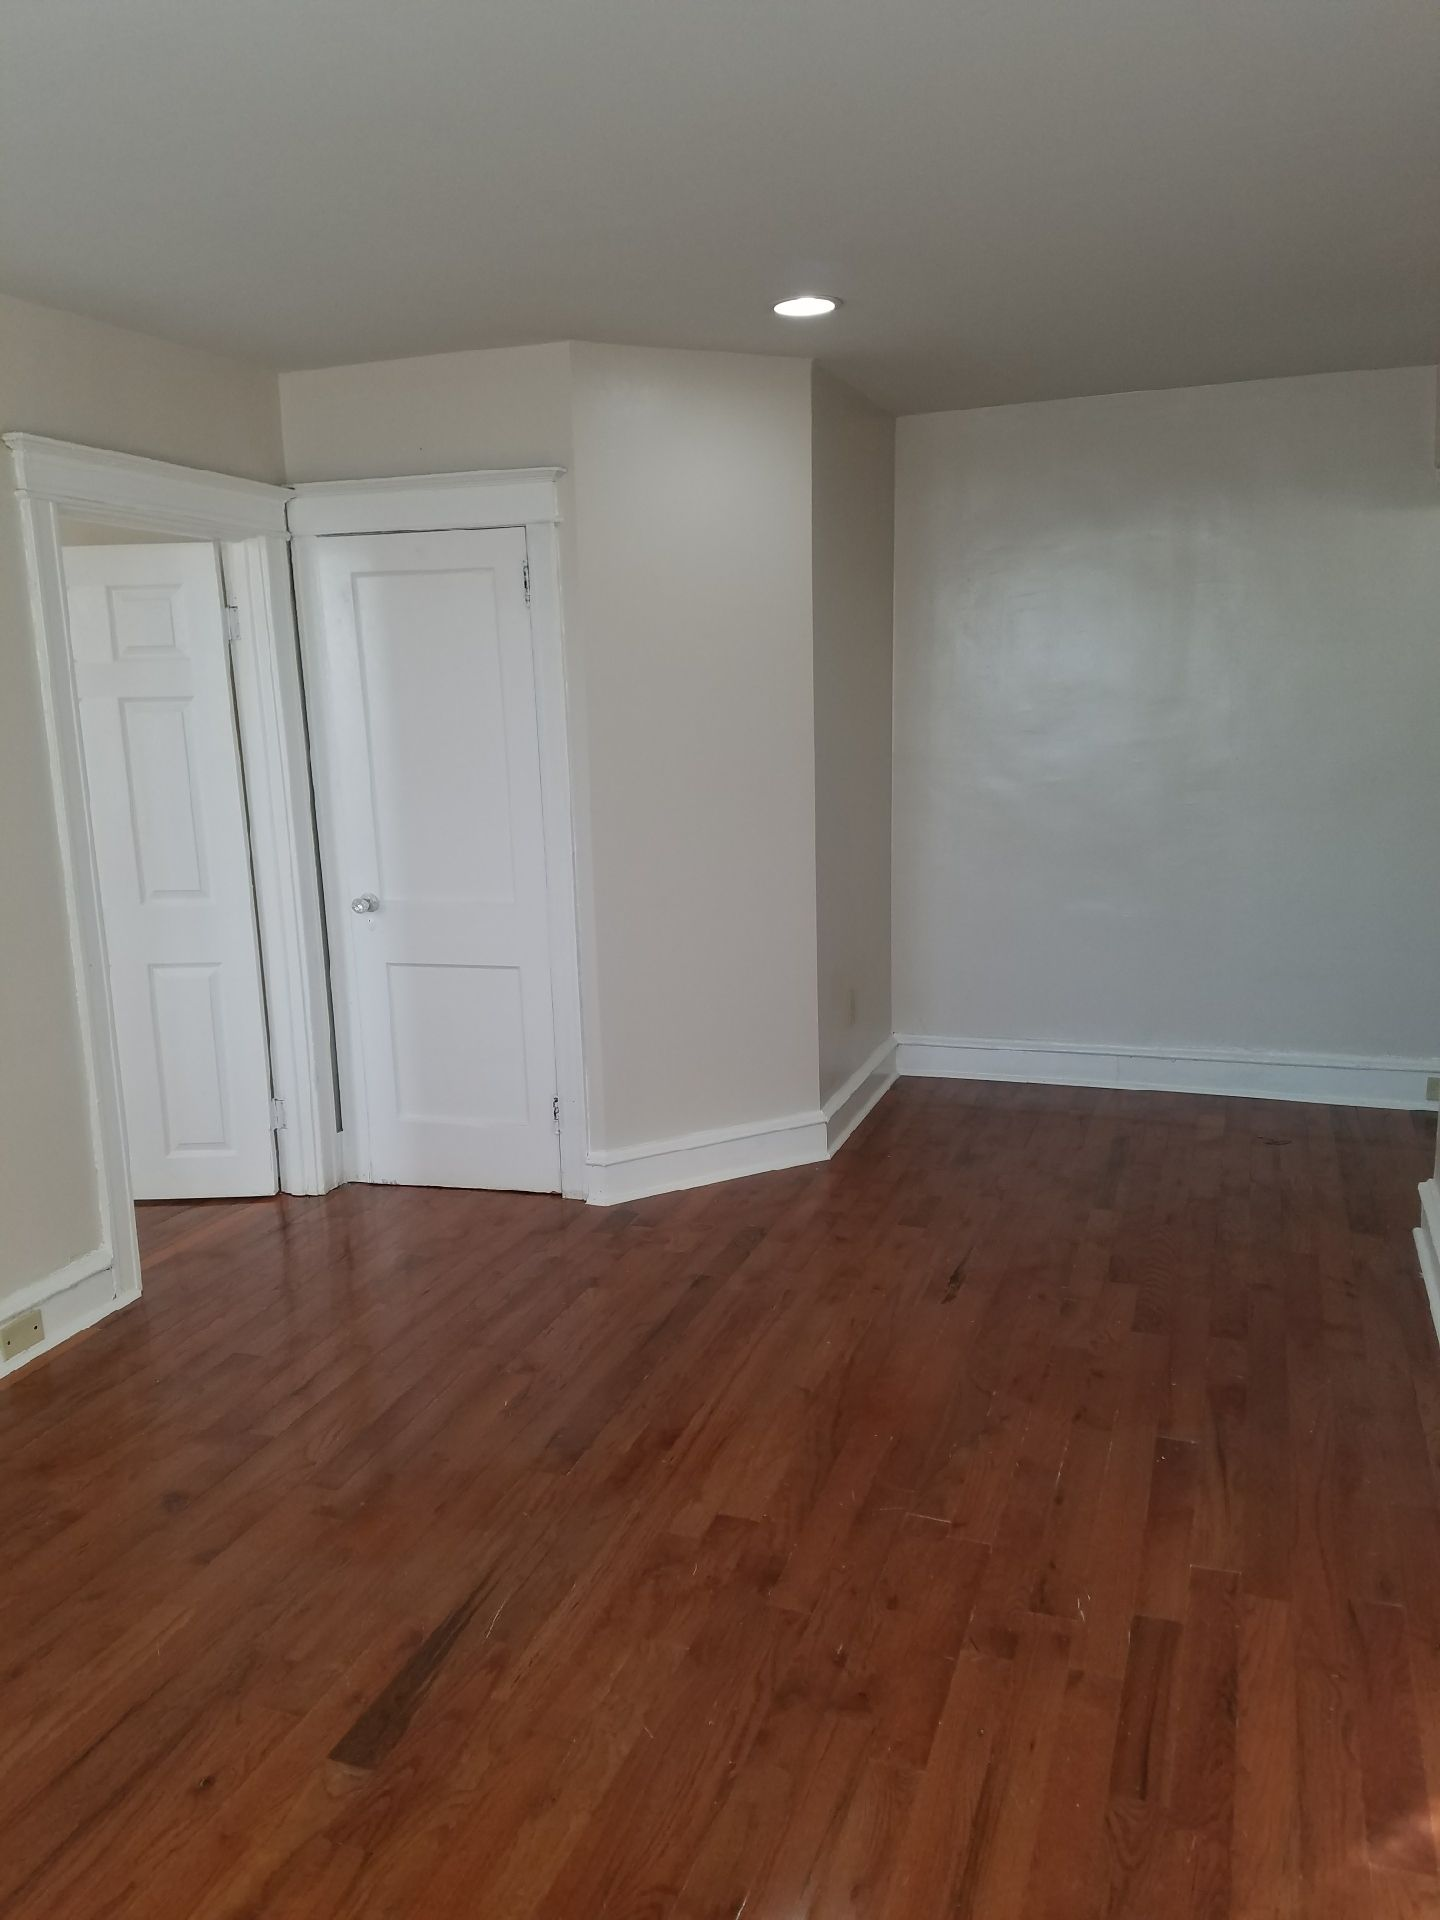 Fresh Paint New Hardwood Floors And New Kitchen In This 1 Bedroom Apartment Philly Philadelphia Rentals Pro Flooring 1 Bedroom Apartment Hardwood Floors